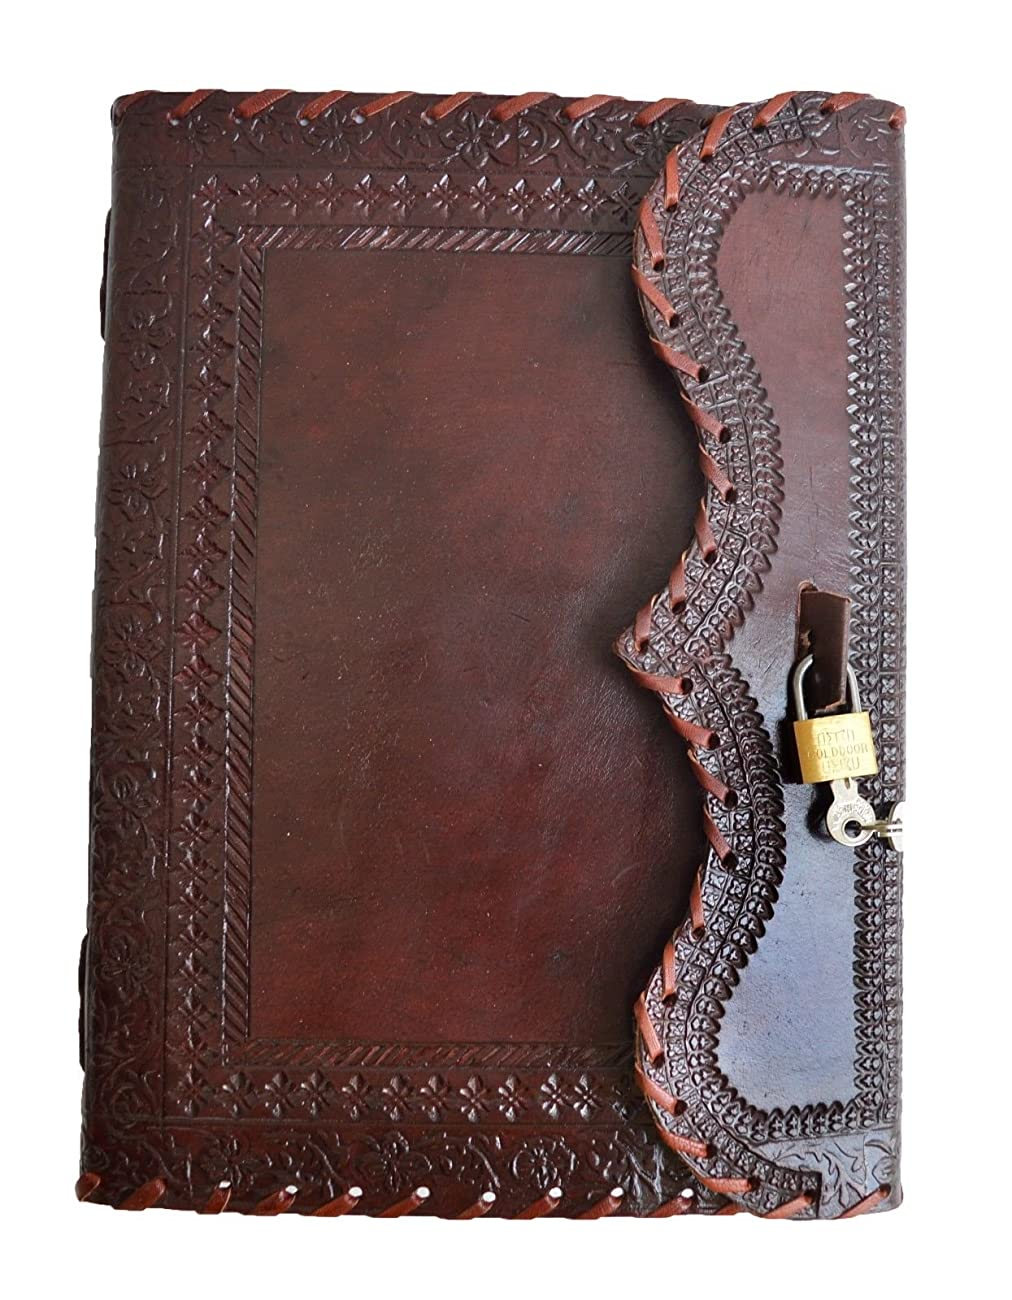 Genuine Leather Journal Vintage Antique Style Organizer Blank Notebook Secret Diary Daily Journal Personal Diary - Maroon 0